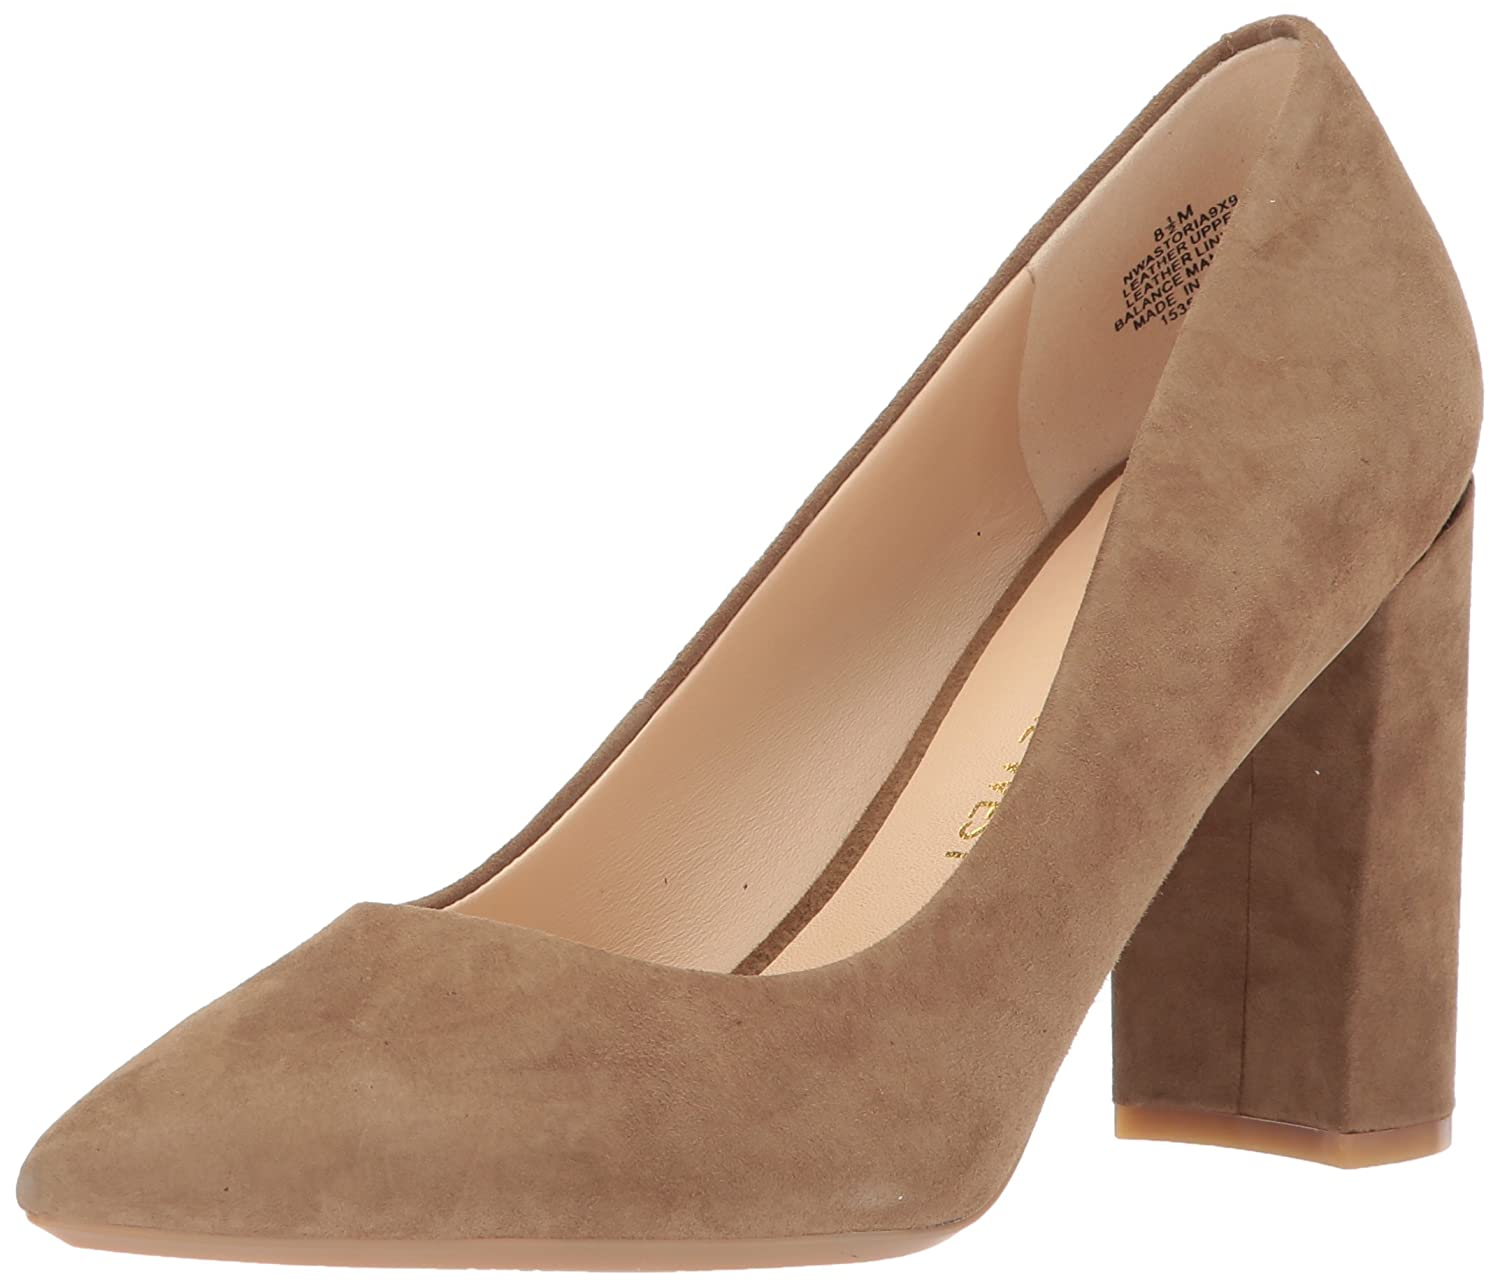 Nine West Women's Astoria Pump B06XMQ9753 9 B(M) US|Green Suede